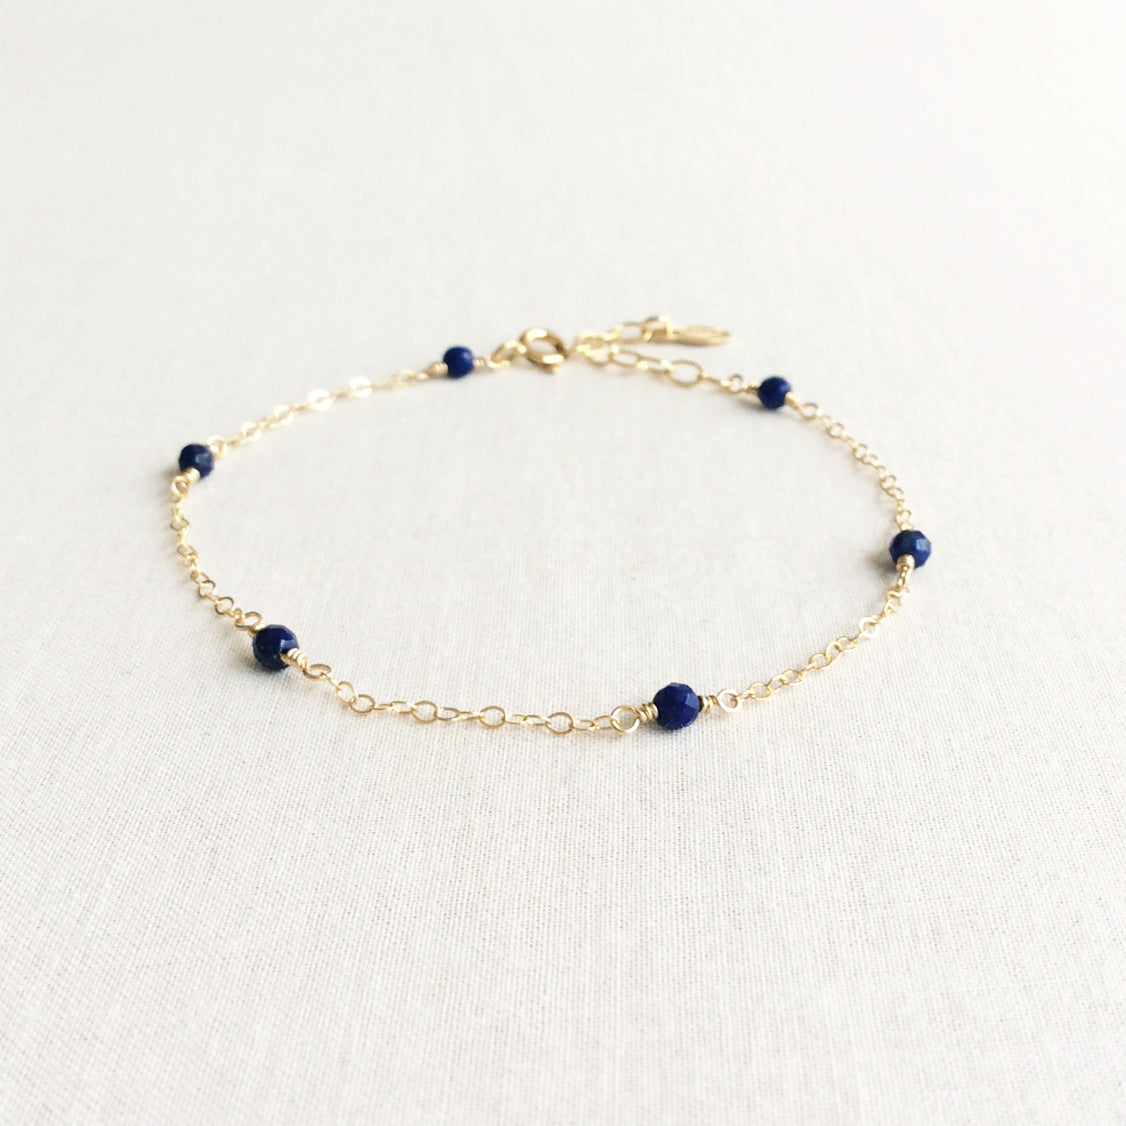 dainty lapis lazuli gold bracelet with adjustable chain in 14k or gold filled